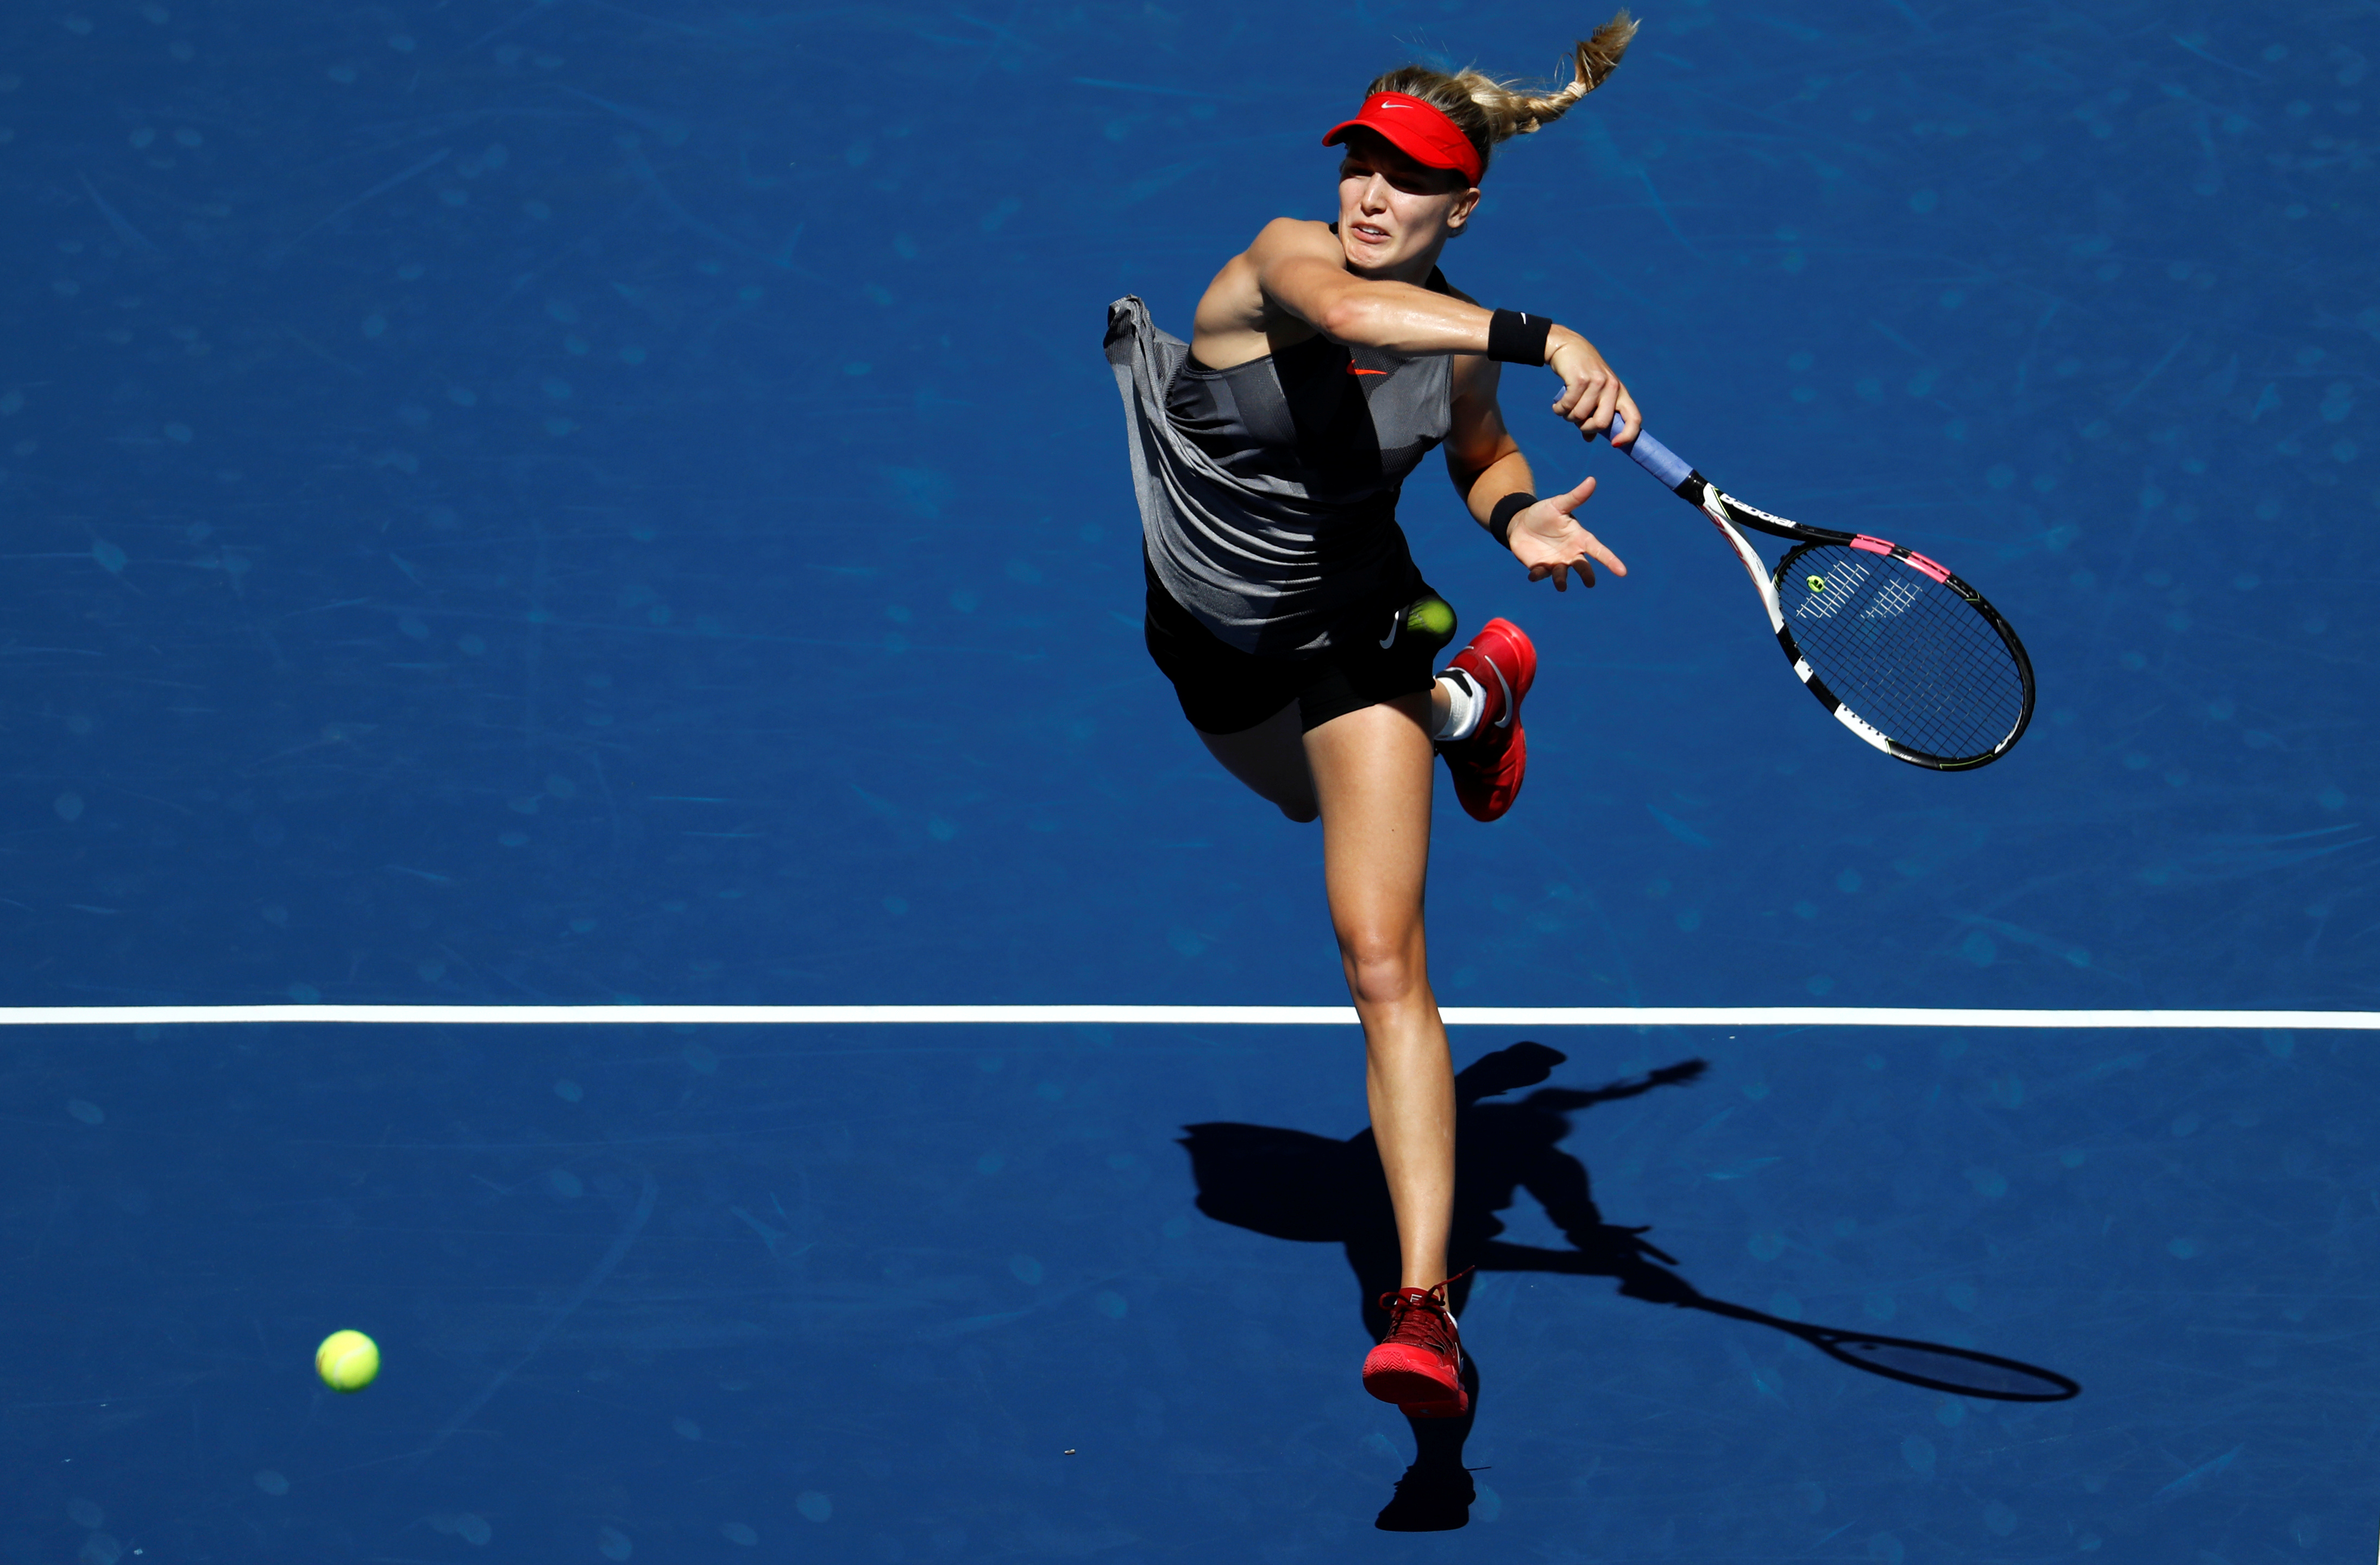 Tennis - US Open - New York, U.S. - August 30, 2017 - Eugenie Bouchard of Canada in action against Evgeniya Rodina of Russia in their first round match. REUTERS/Mike Segar - RTX3E0YD